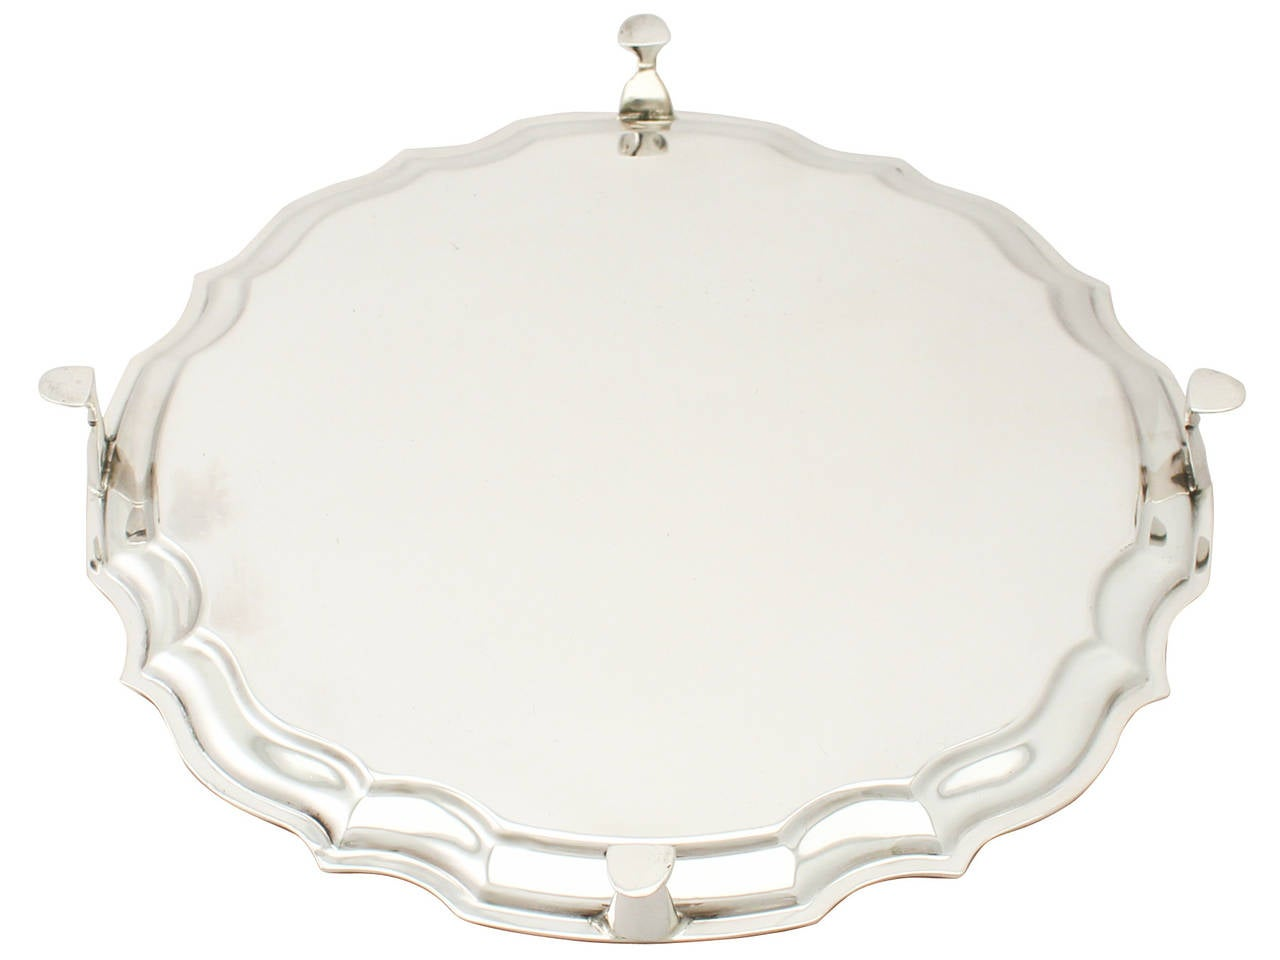 Vintage 1966 Sterling Silver Salver by Francis Howard For Sale 3